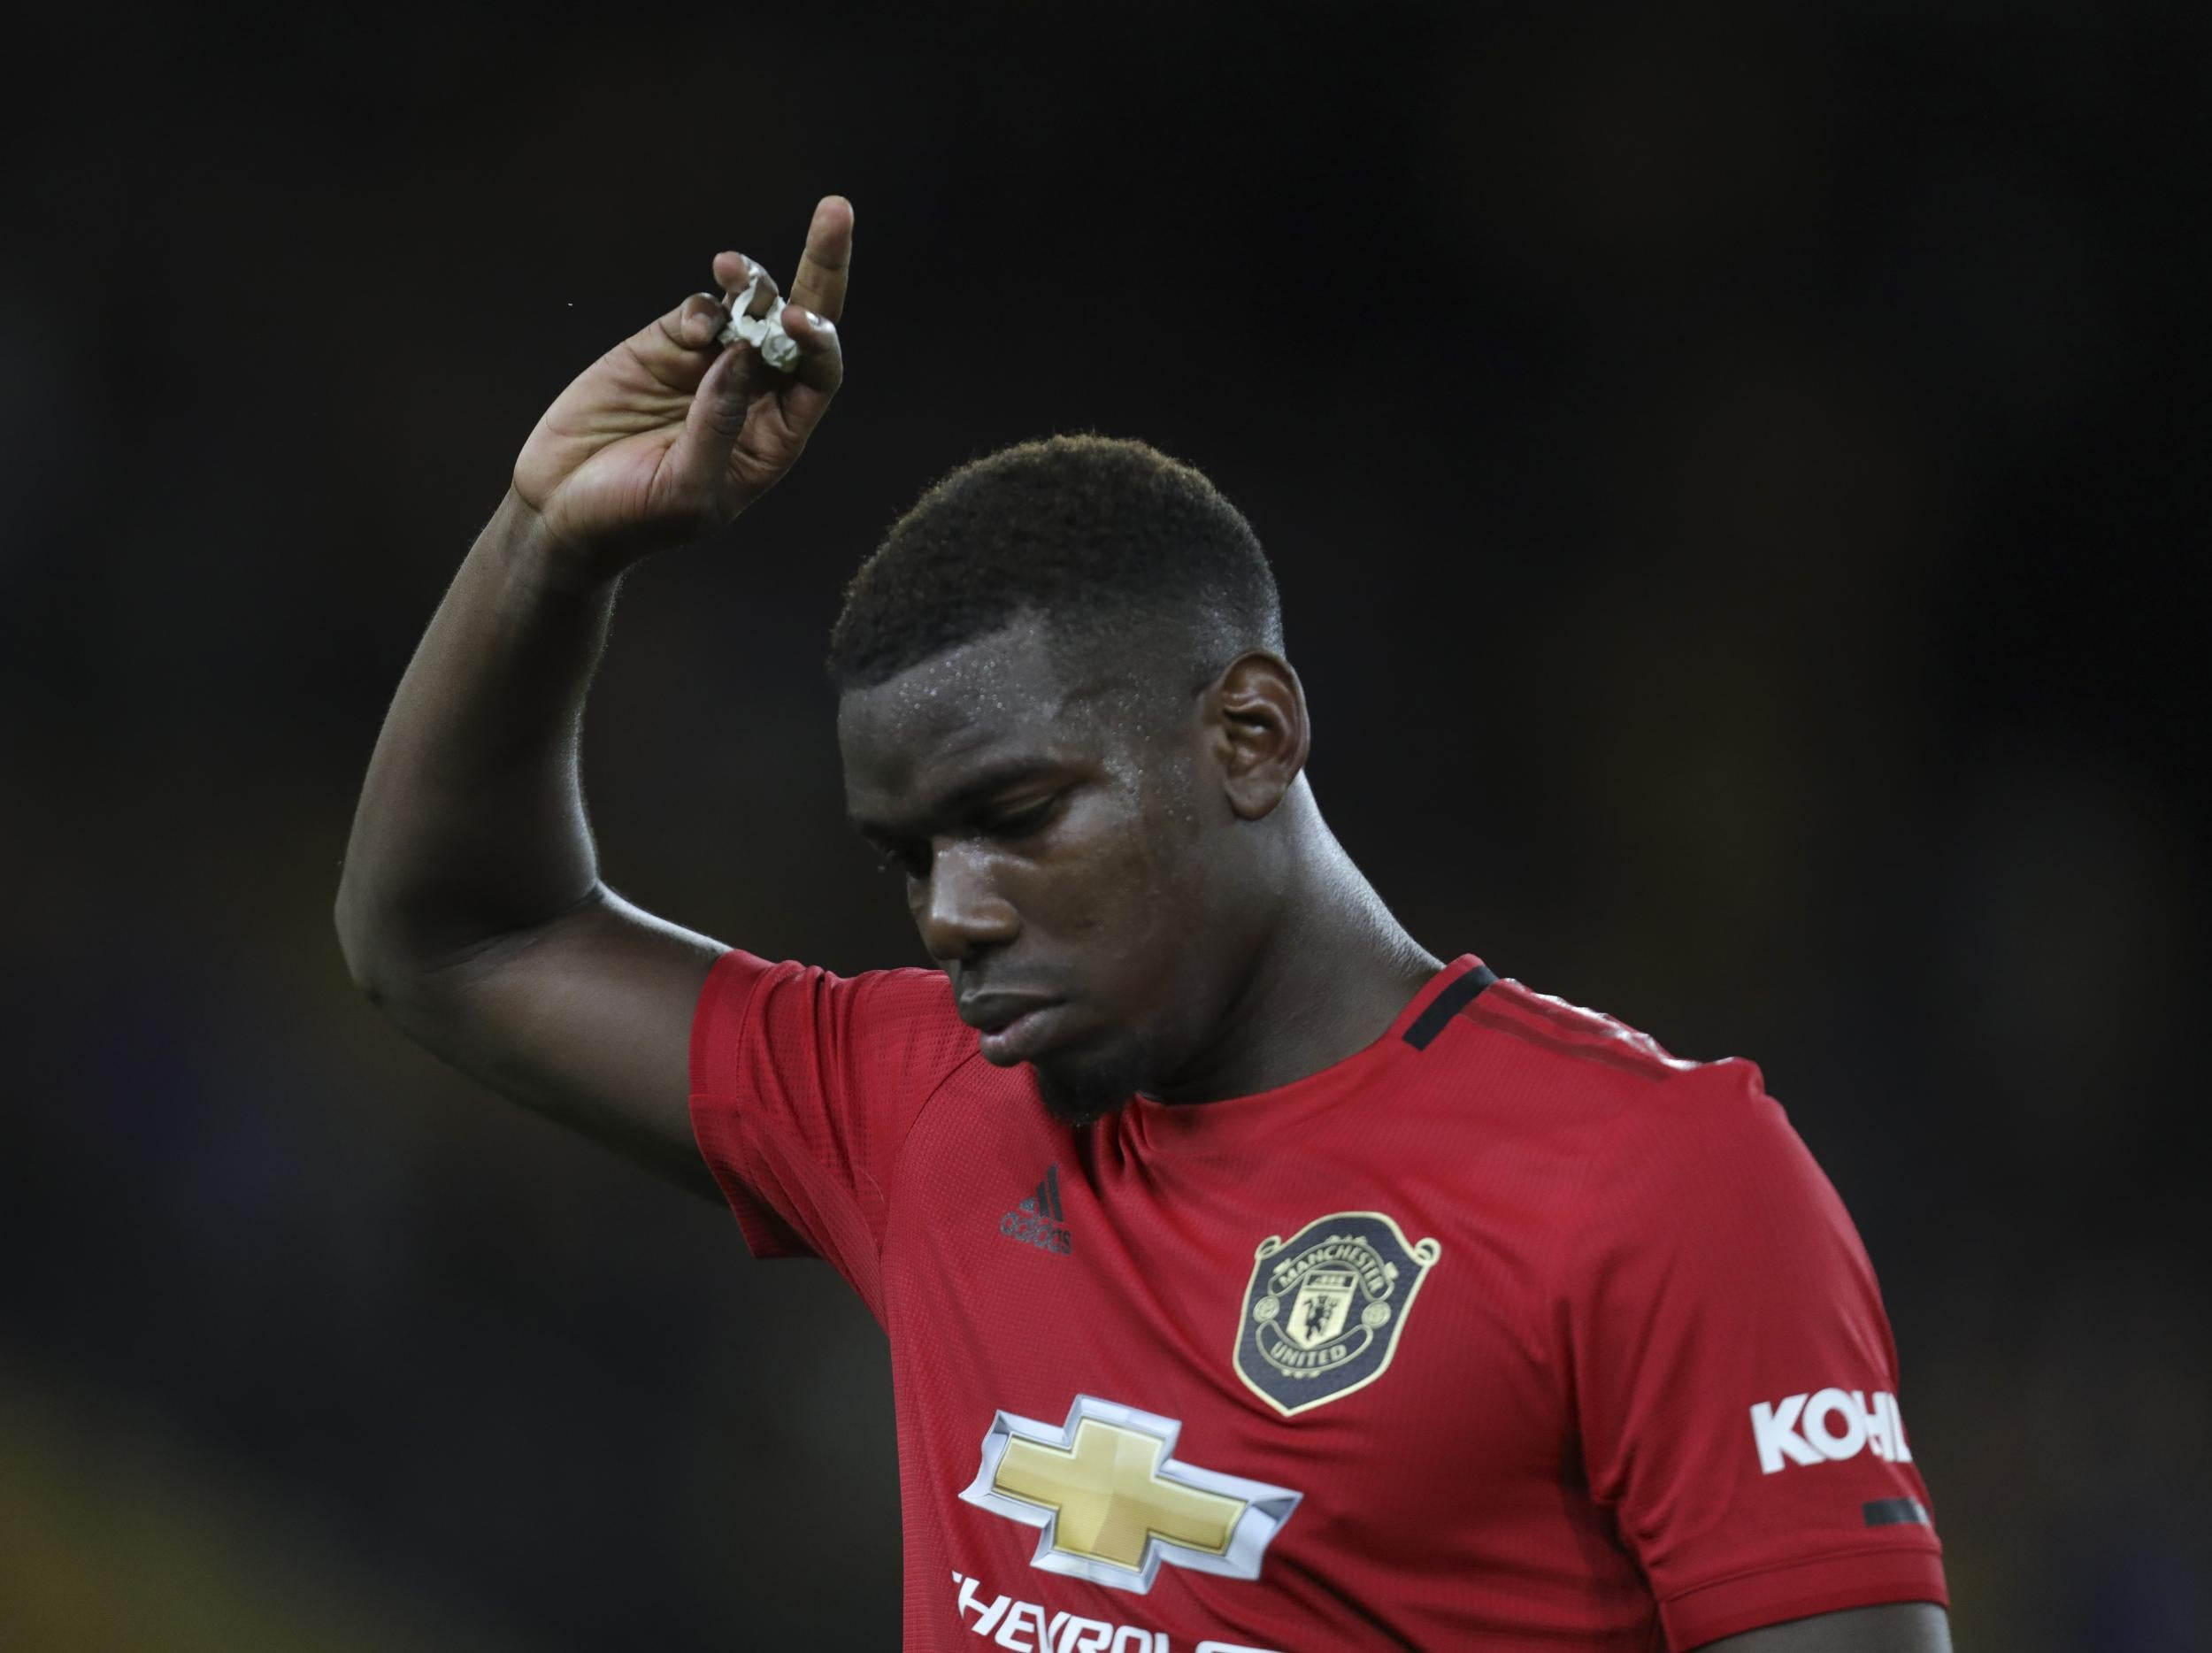 Paul Pogba's penalty, Alexis Sanchez, VAR and more: The 7 football stories you need to know this morning